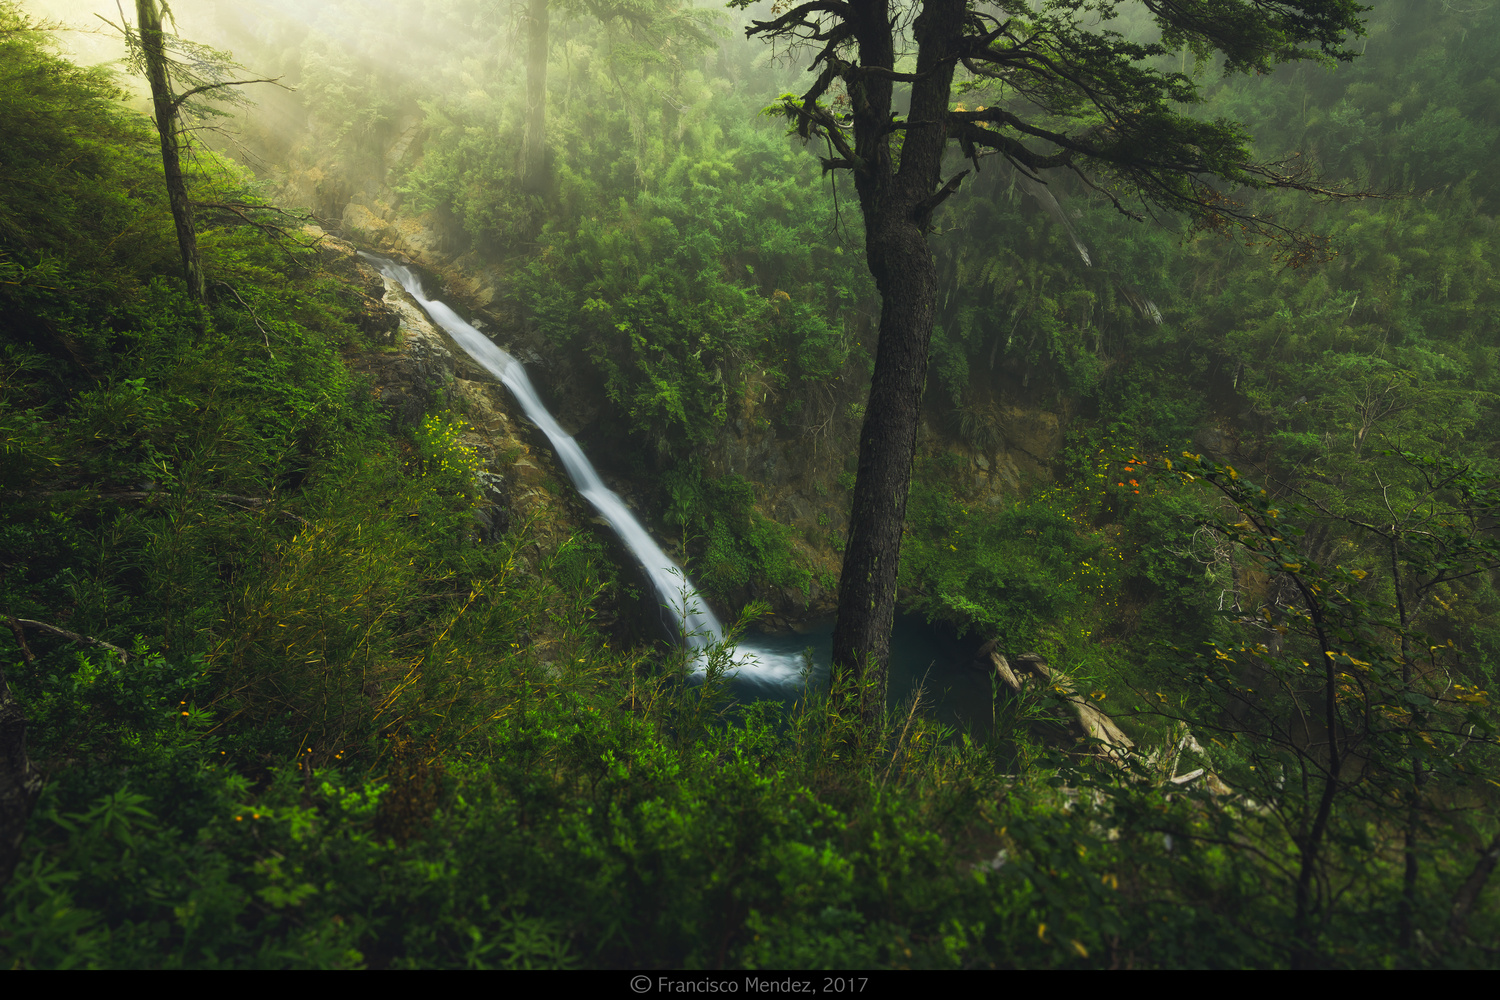 Discovering Hidden Waterfalls by Francisco Mendez